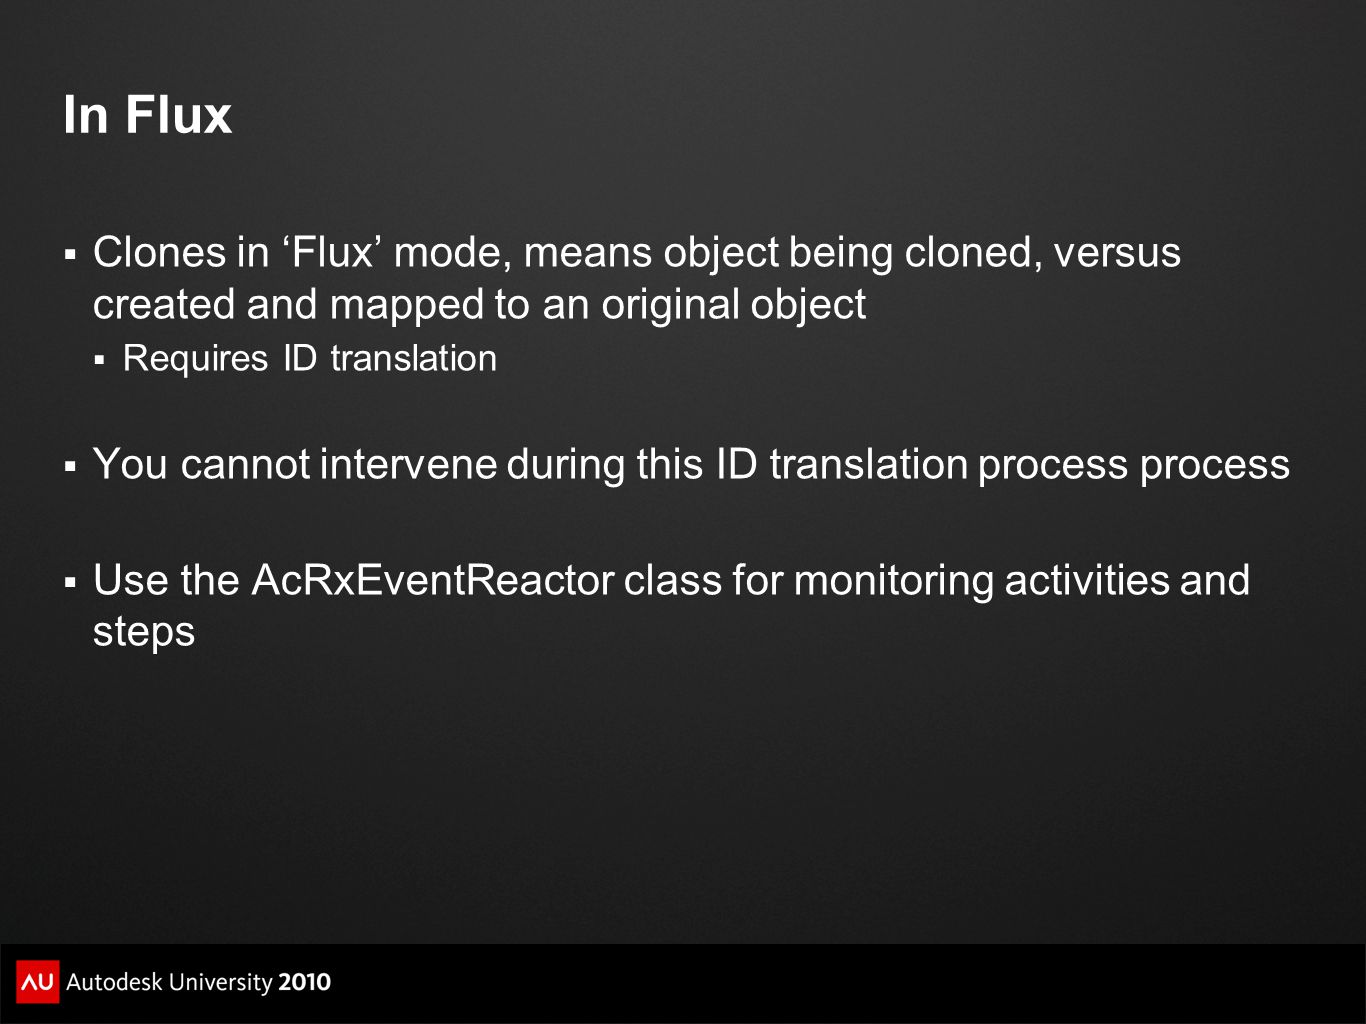 In Flux Clones in 'Flux' mode, means object being cloned, versus created and mapped to an original object.